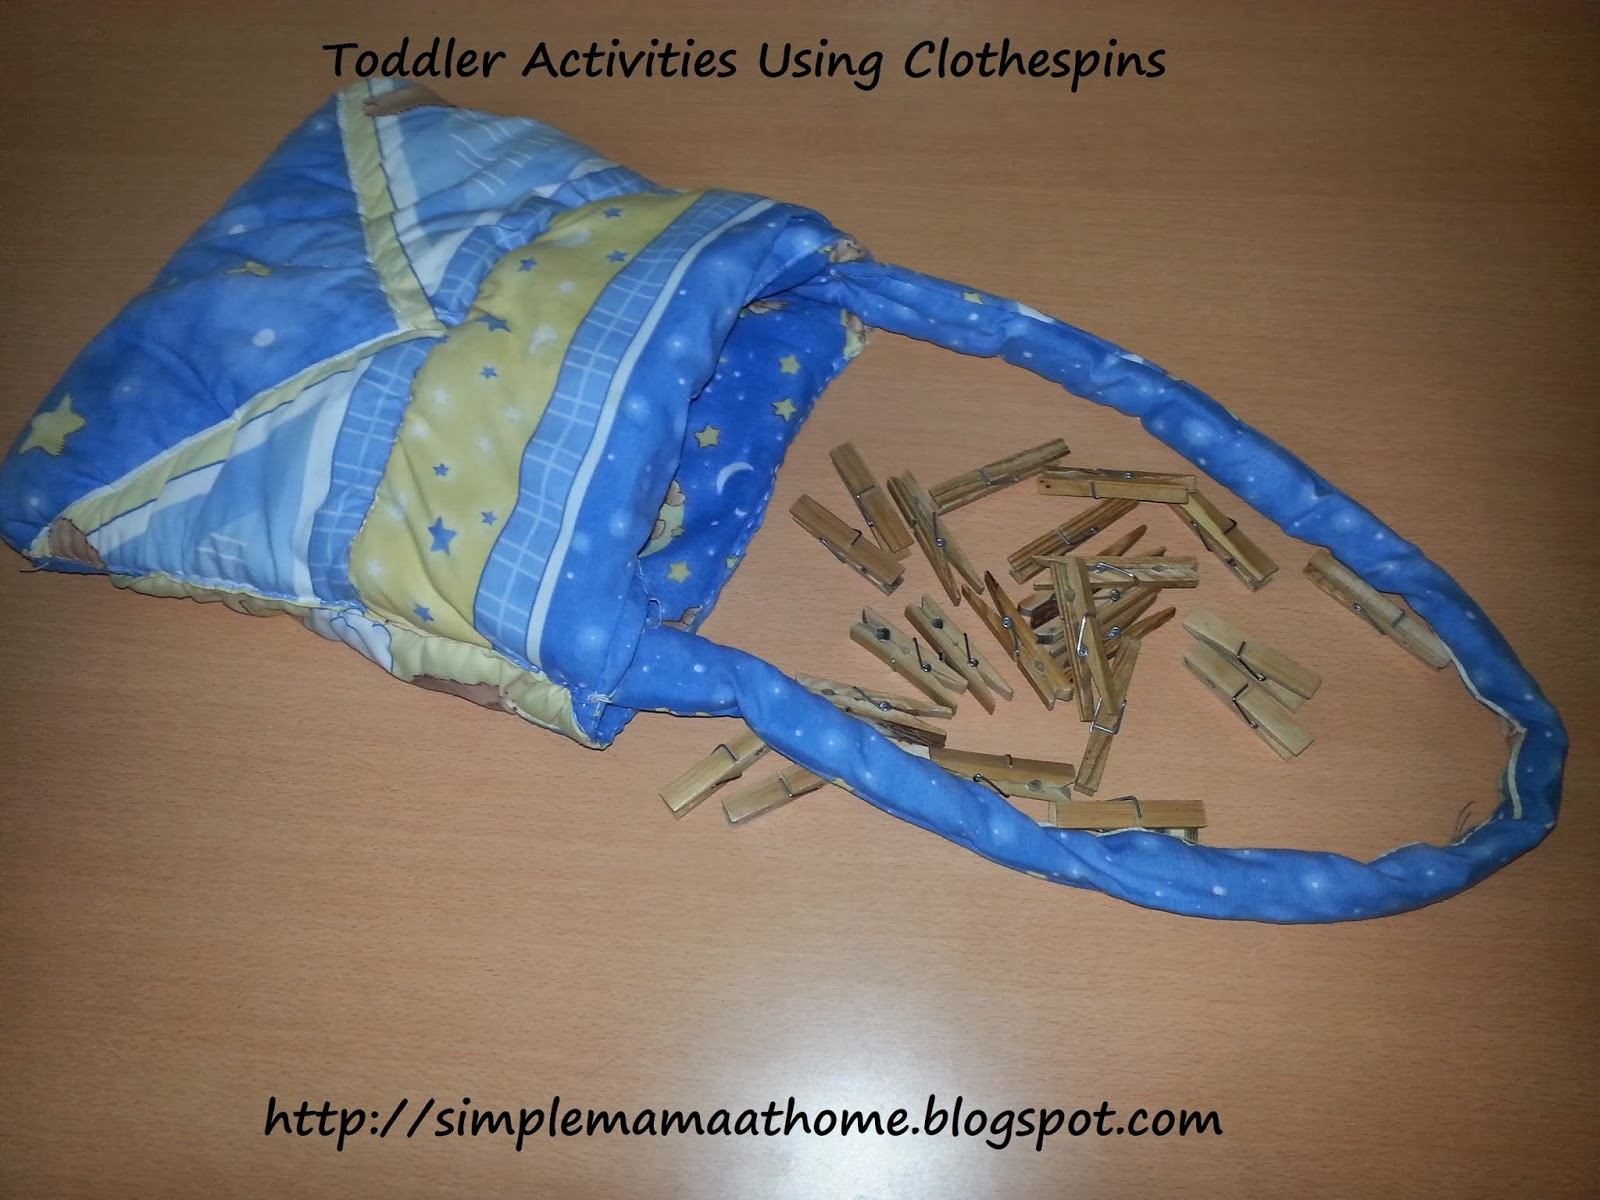 Toddler Activities Using Clothespins